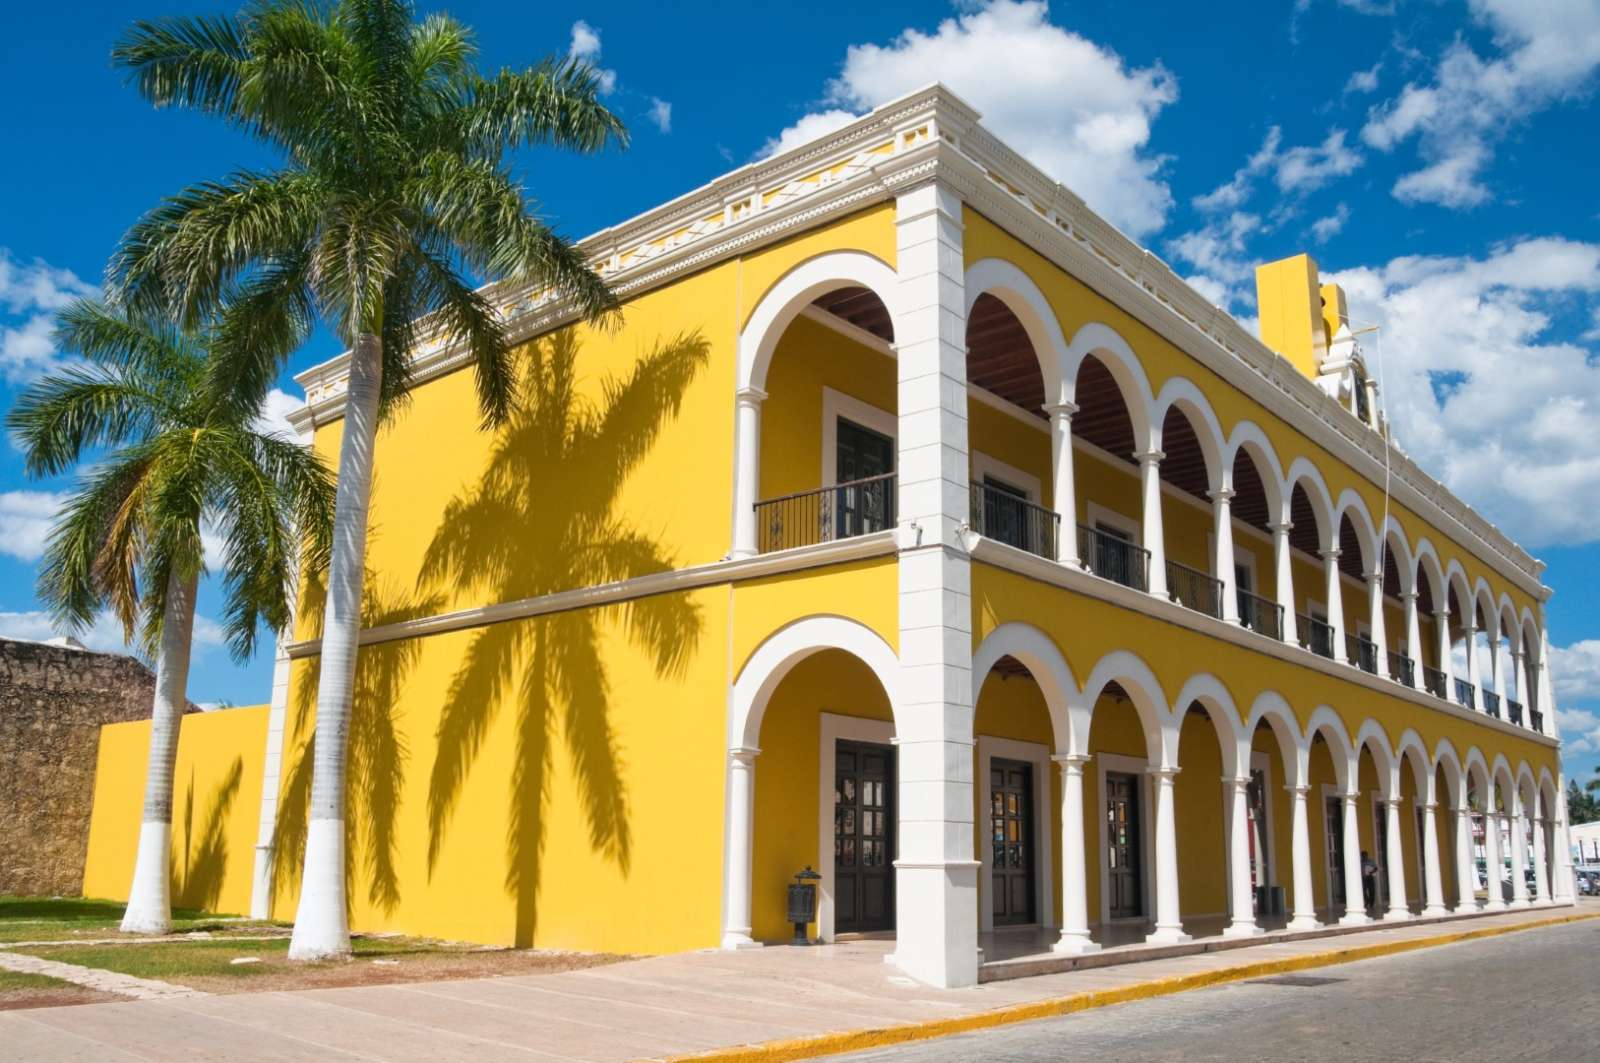 Library in Campeche Mexico